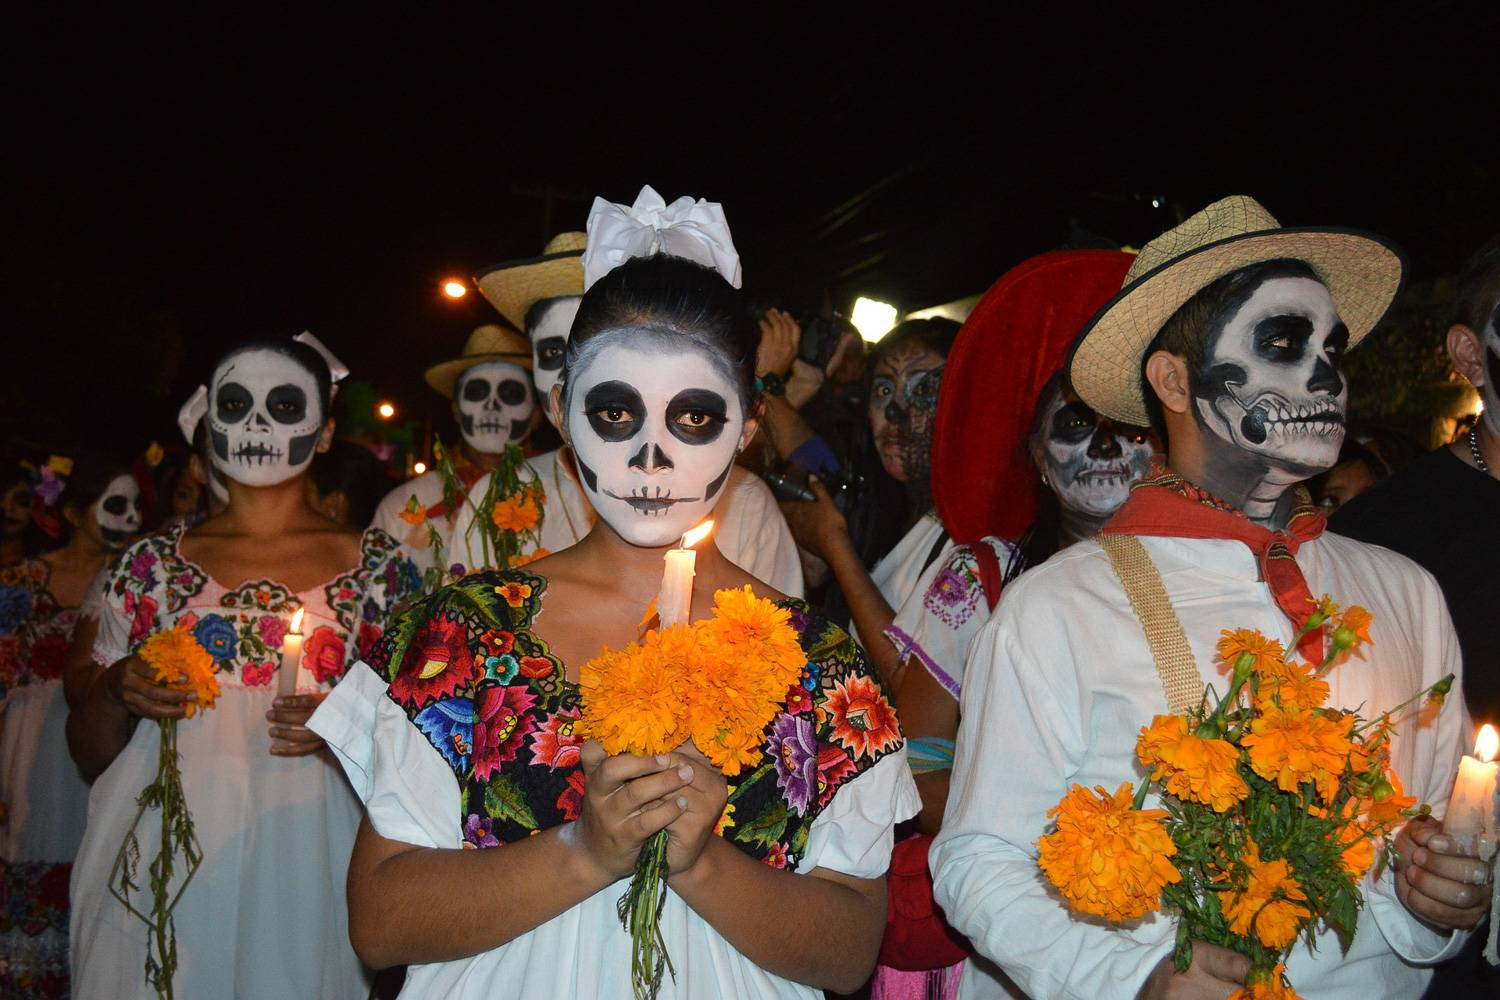 Image of people with skeleton face paint carrying candles for Día de los muertos.